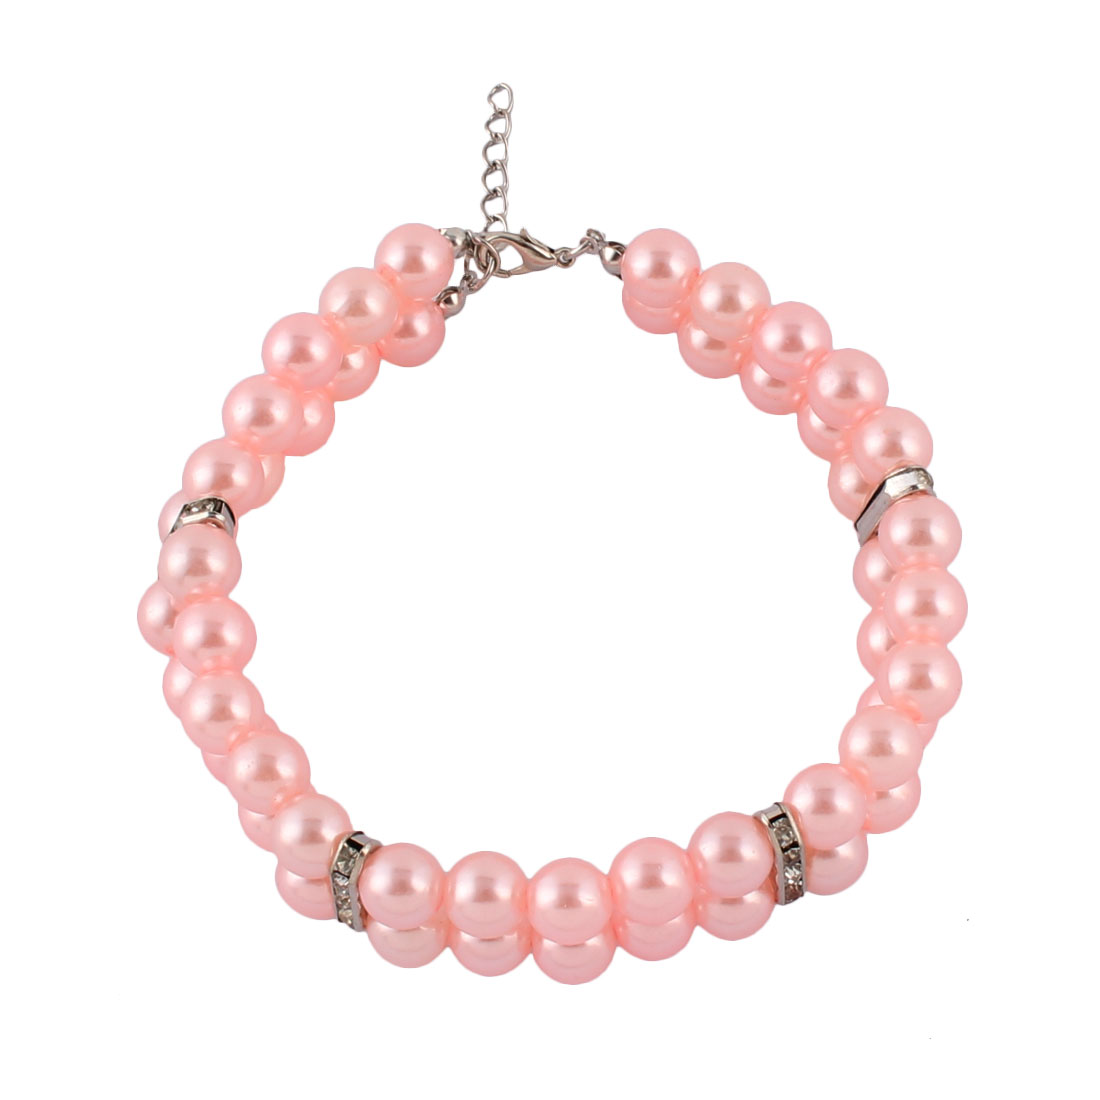 Wedding Dog Plastic Imitation Pearls Bling Rhinestones Clasp 2 Rows Pet Necklace Light Pink 27-32cm Girth